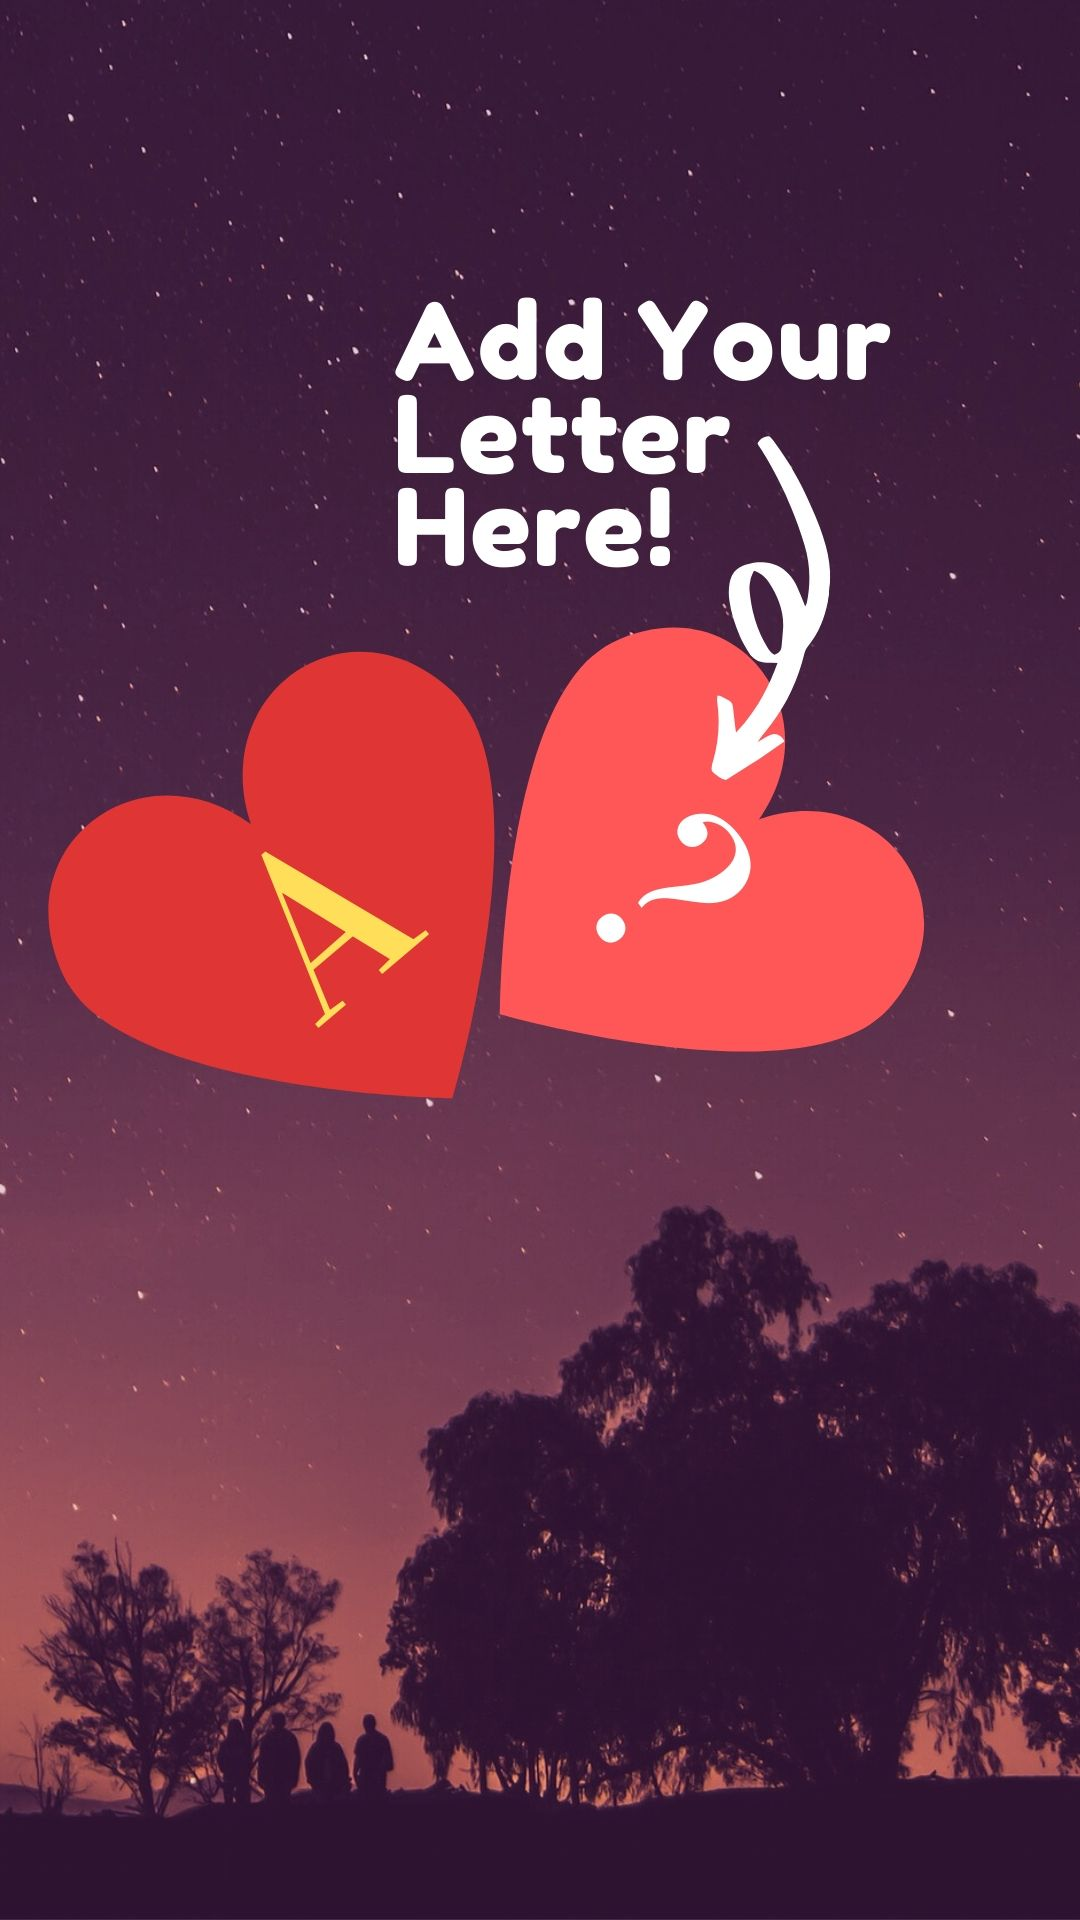 Images Of Letter A In Heart Together With Other Letter Free Muddoo